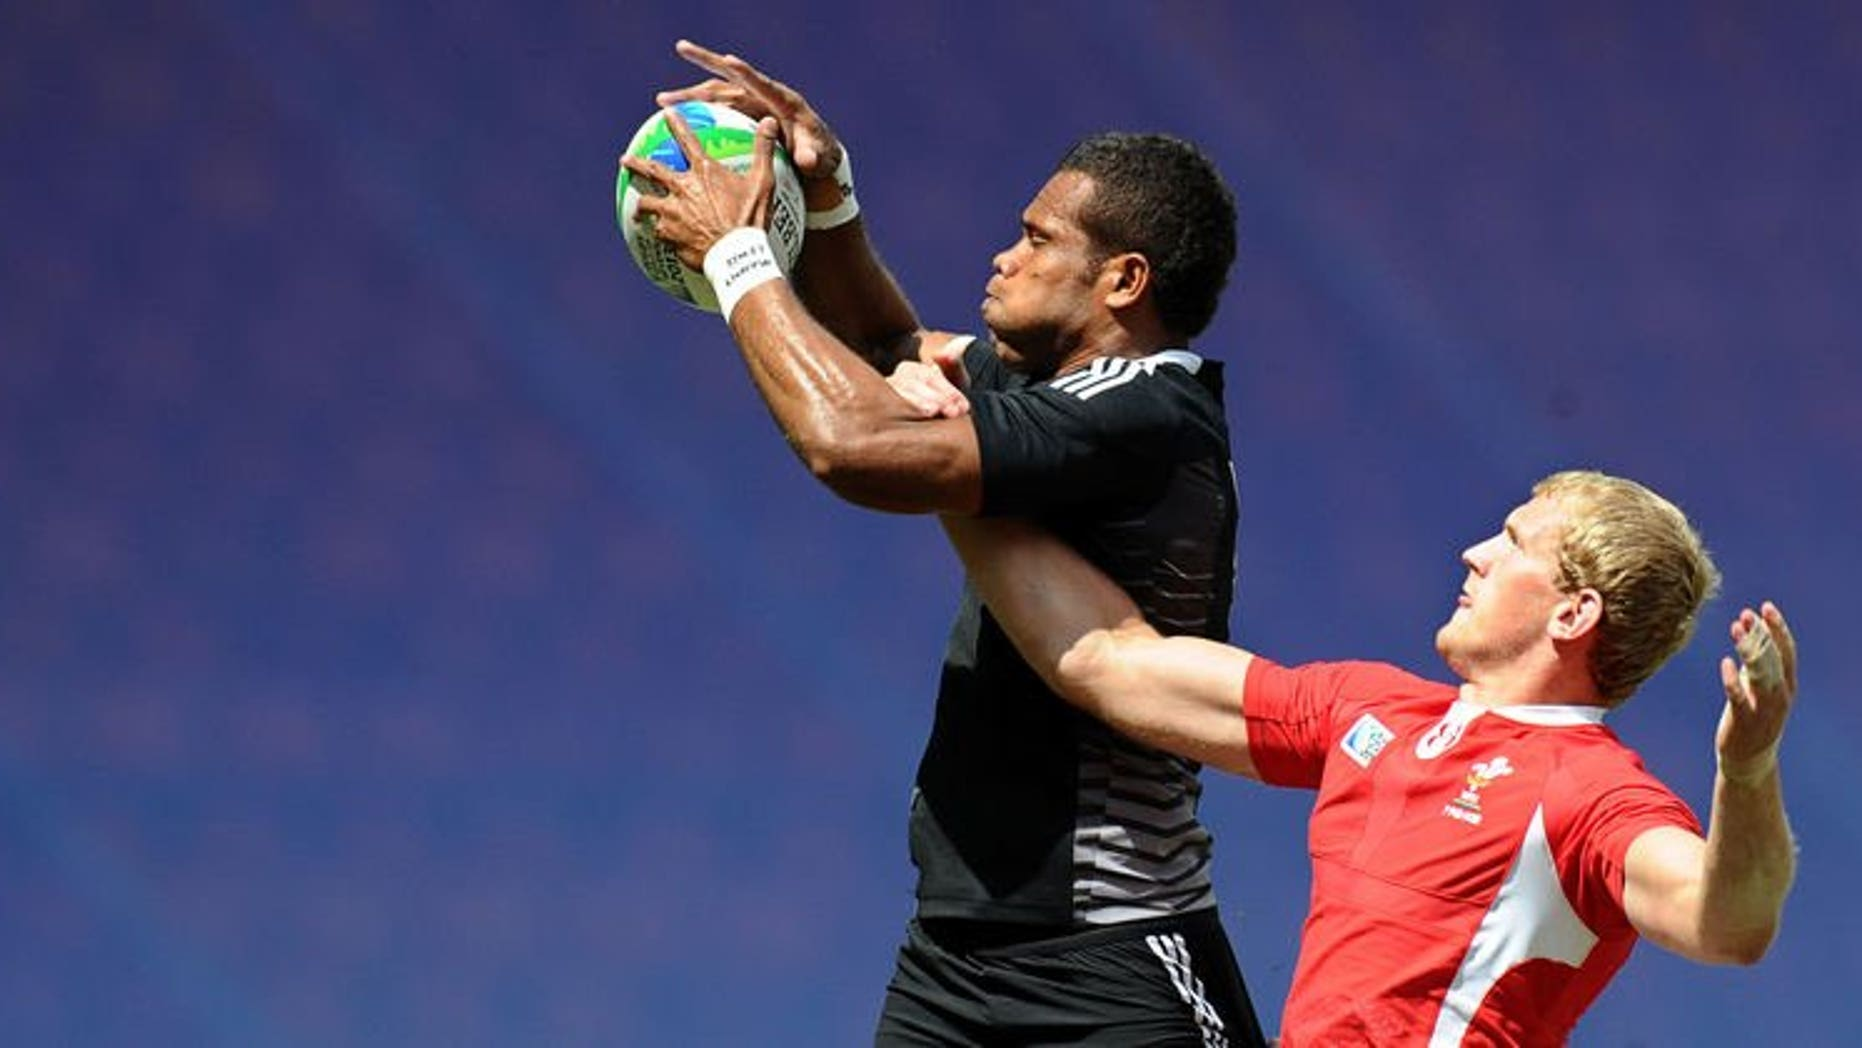 James Davies (right) of Wales vies with Tomasi Cama of New Zealand during their quarter final match at the 2013 Rugby World Cup Sevens in Moscow on June 30, 2013. New Zealand knocked defending champions Wales out of the tournament to set up a semi-final against arch-rivals Fiji.